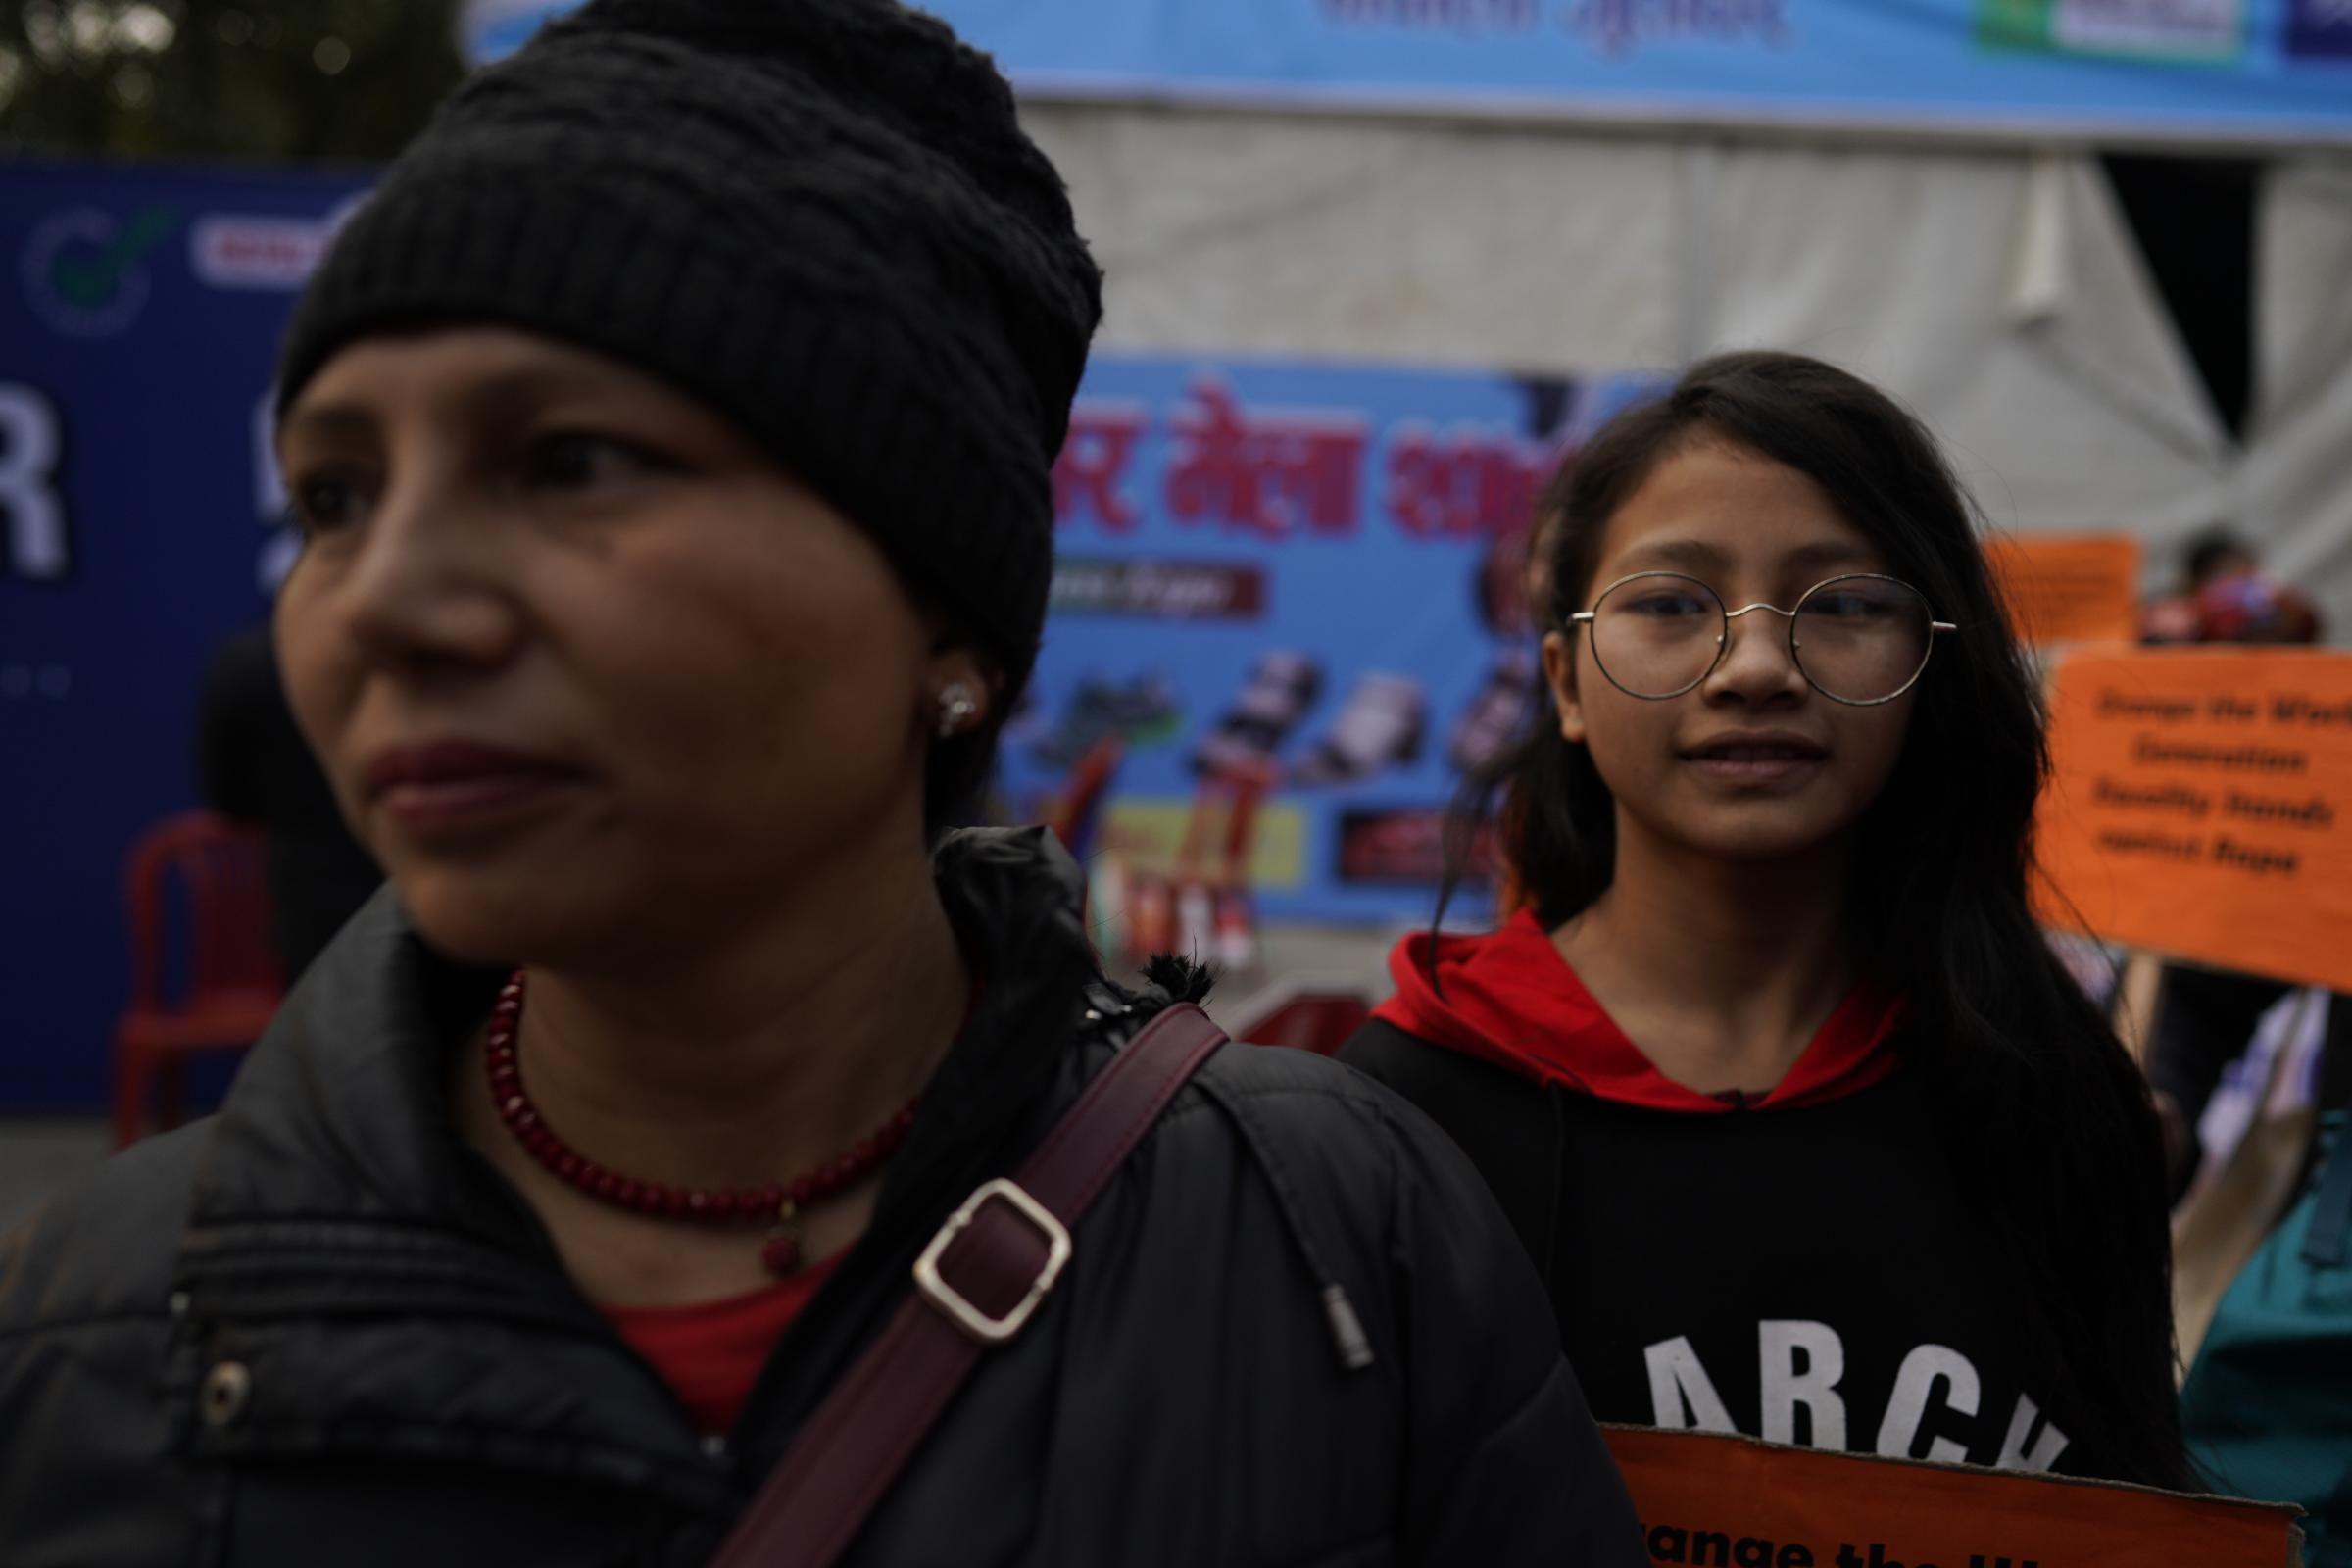 A woman and young girl walk together during a rally.